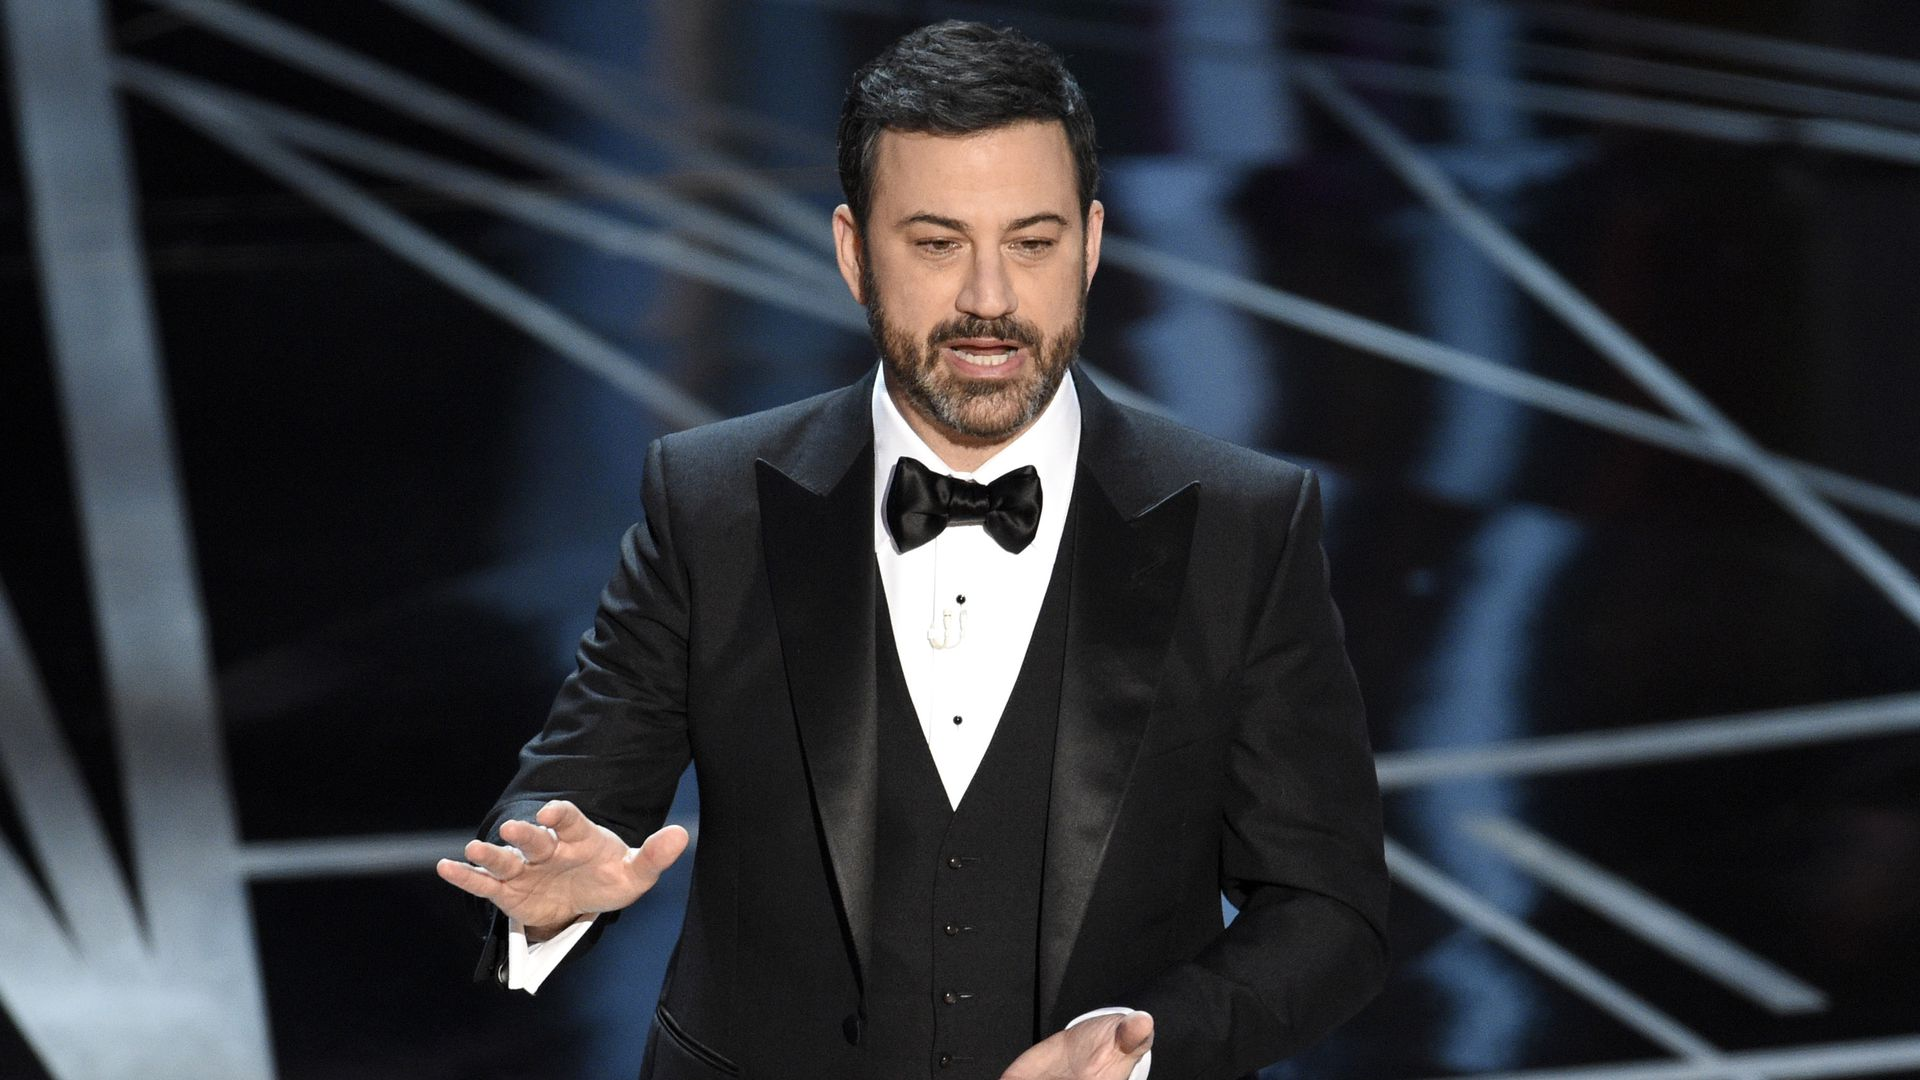 Jimmy Kimmel at the Oscars